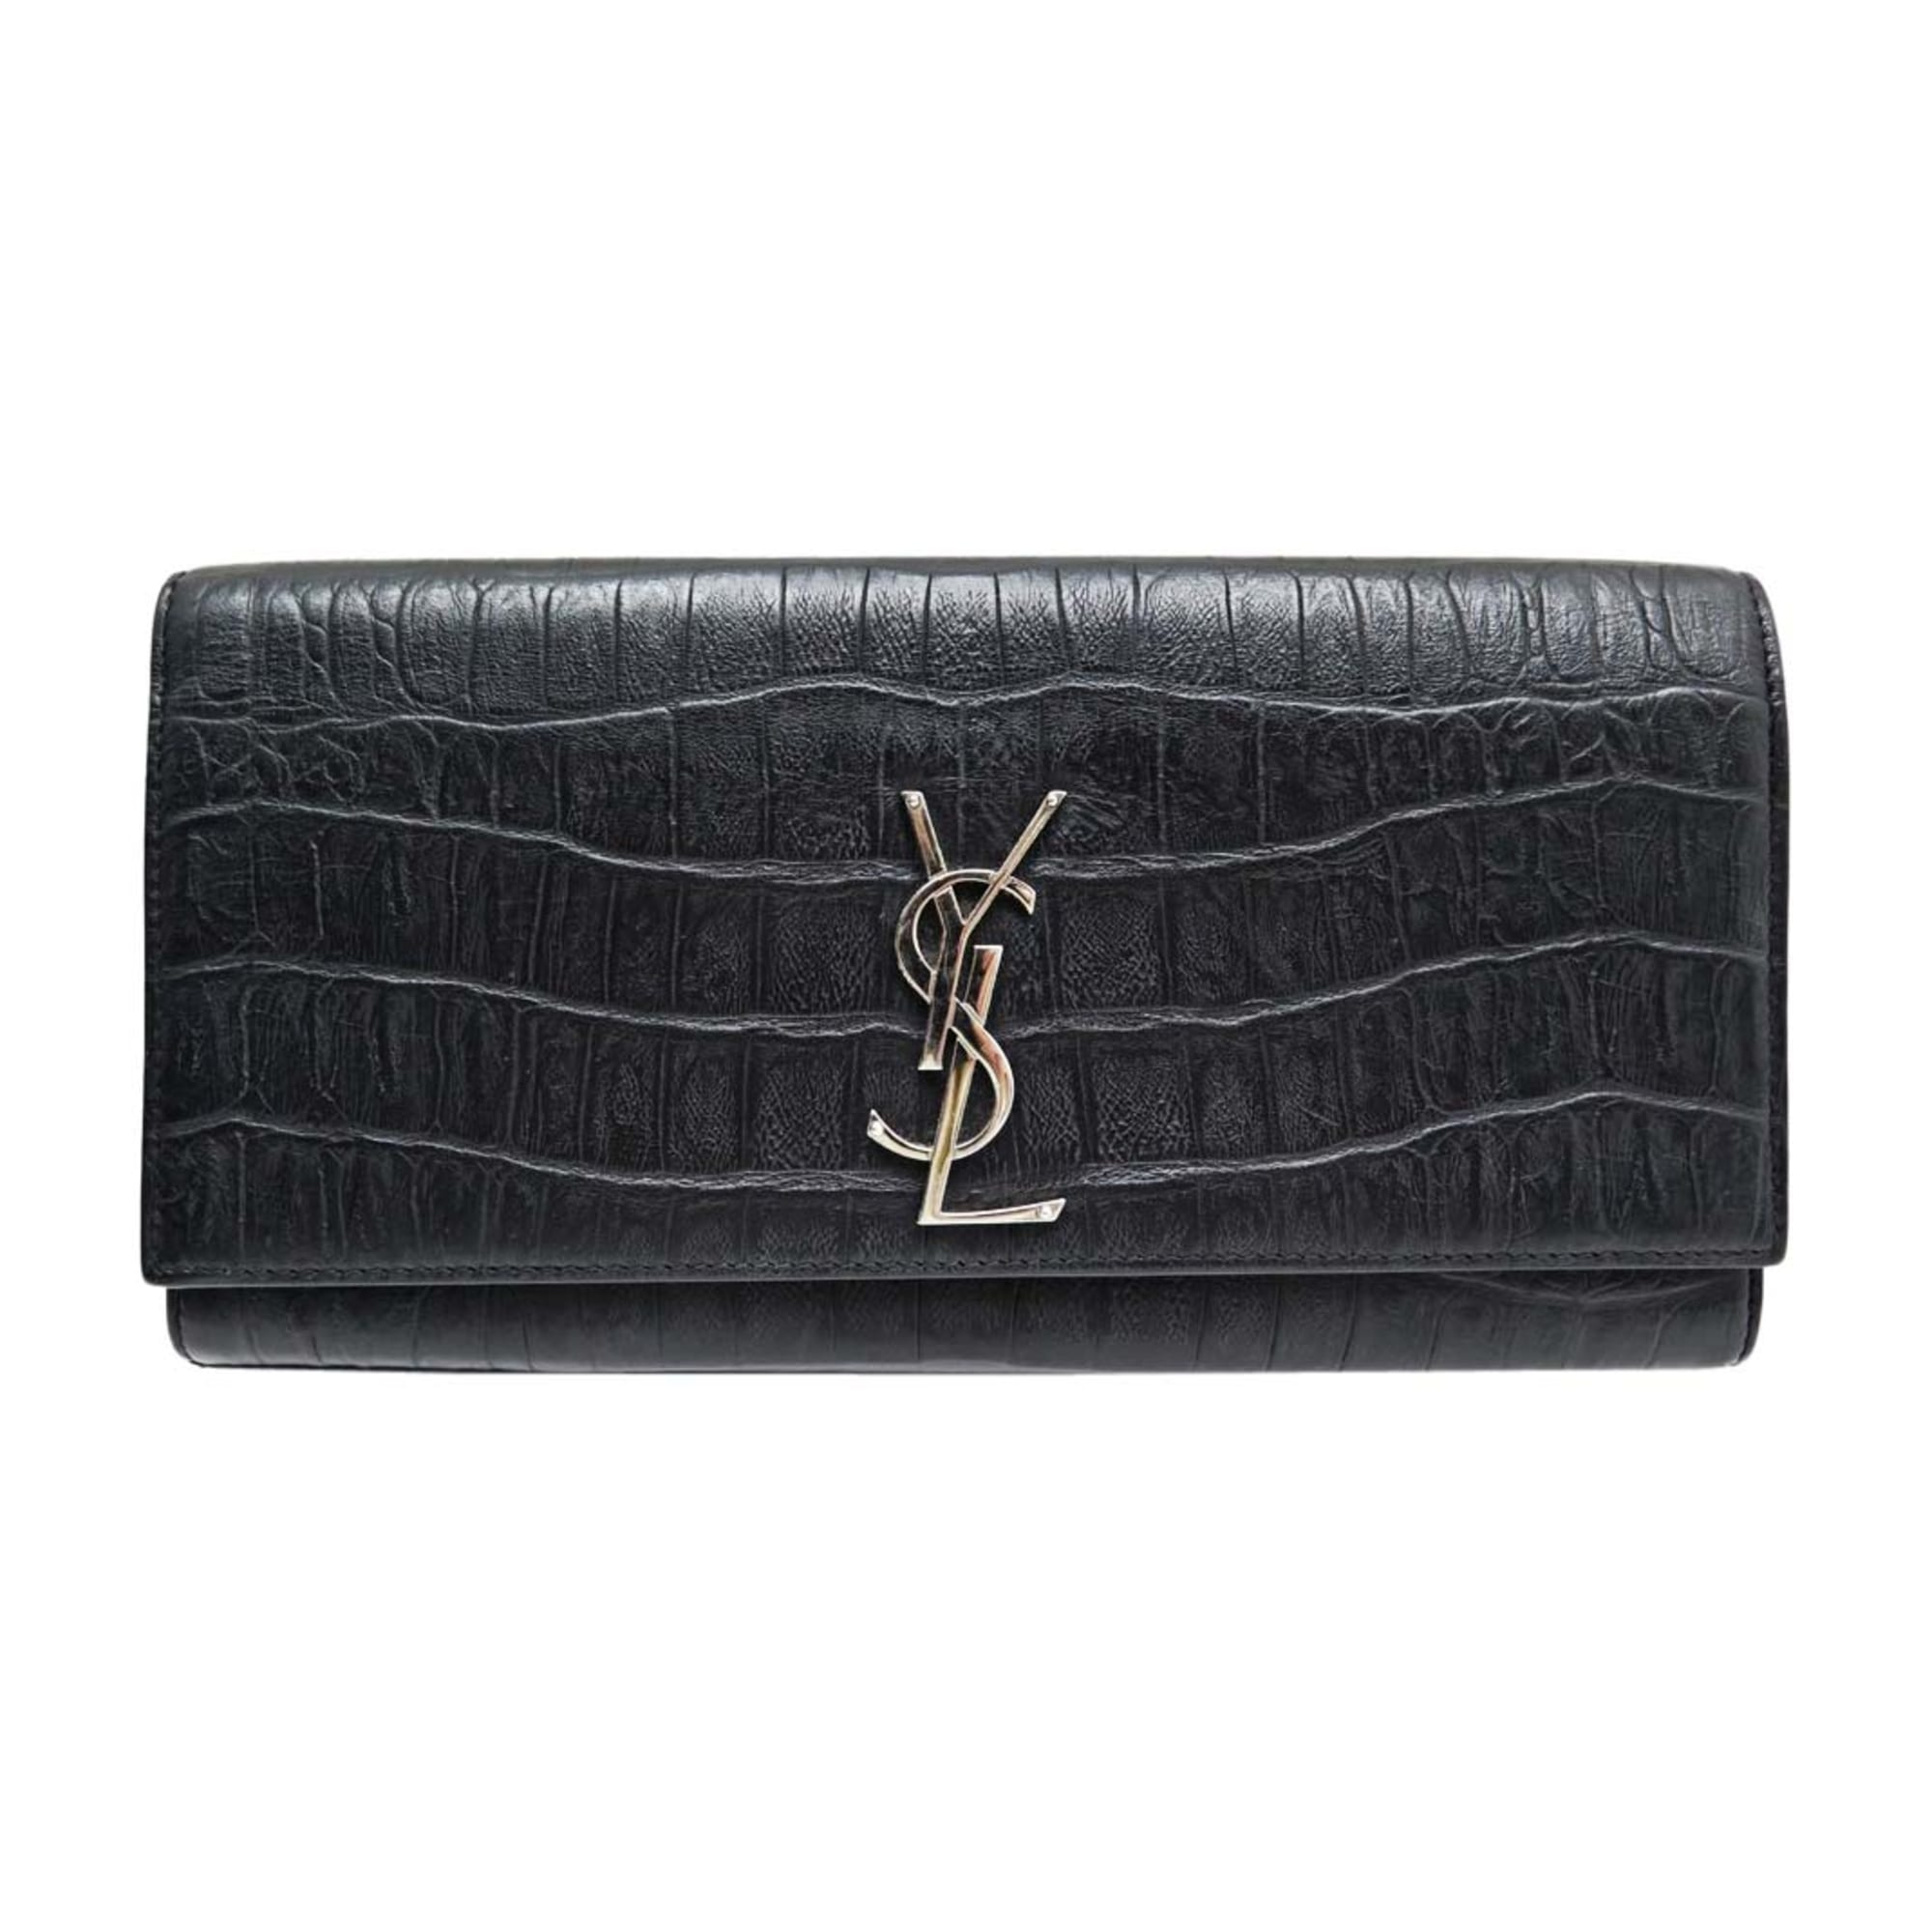 Leather Clutch SAINT LAURENT Black